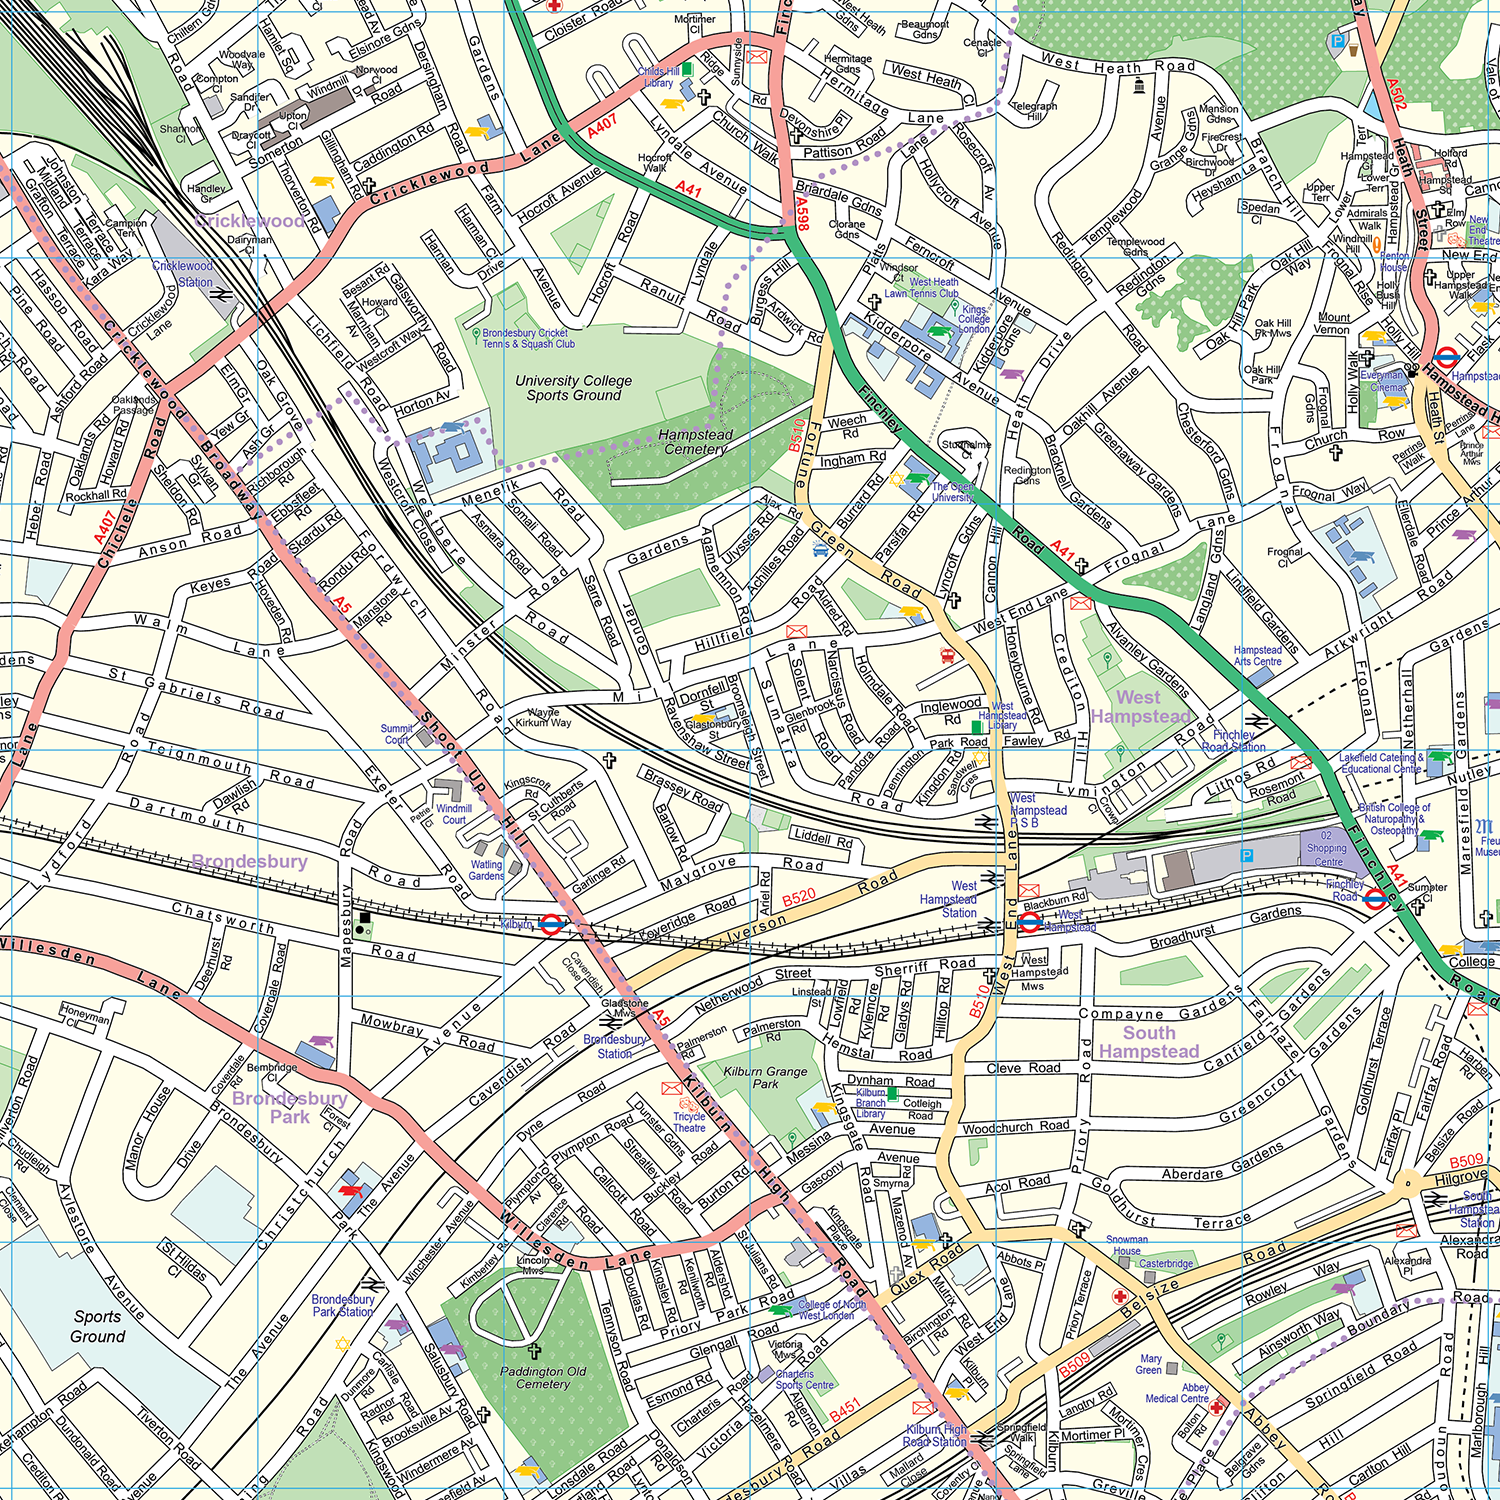 Map North West London.London Xyz Citymap London North West Wall Map